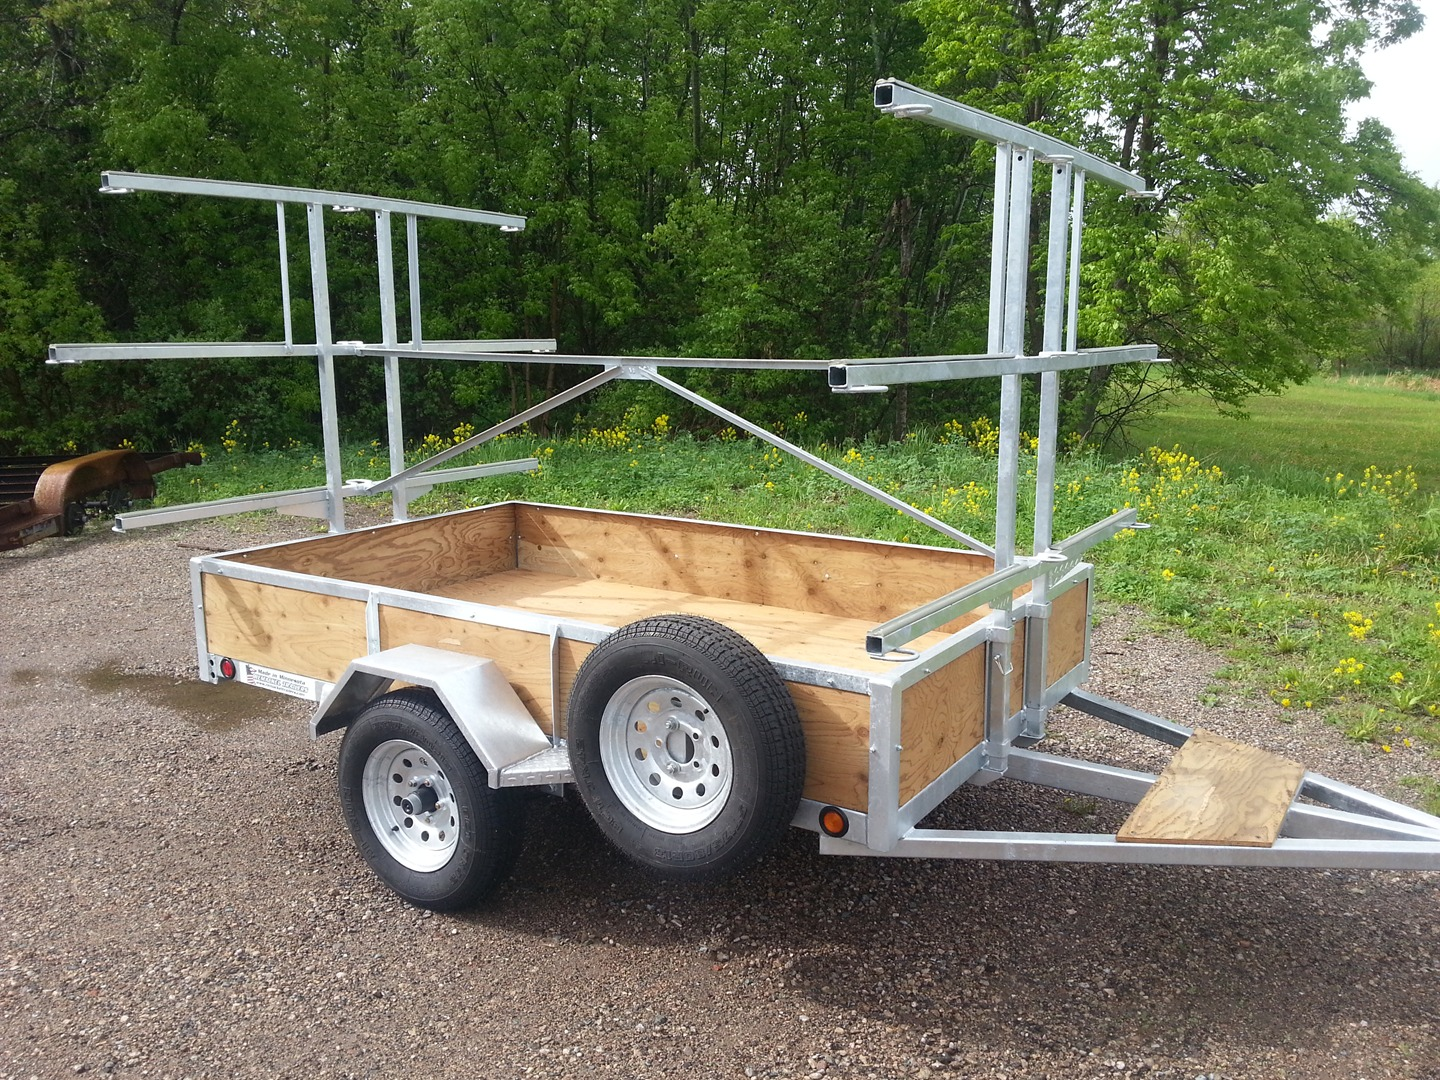 Galvanized 6 Place Canoe Amp Kayak Trailers For Sale